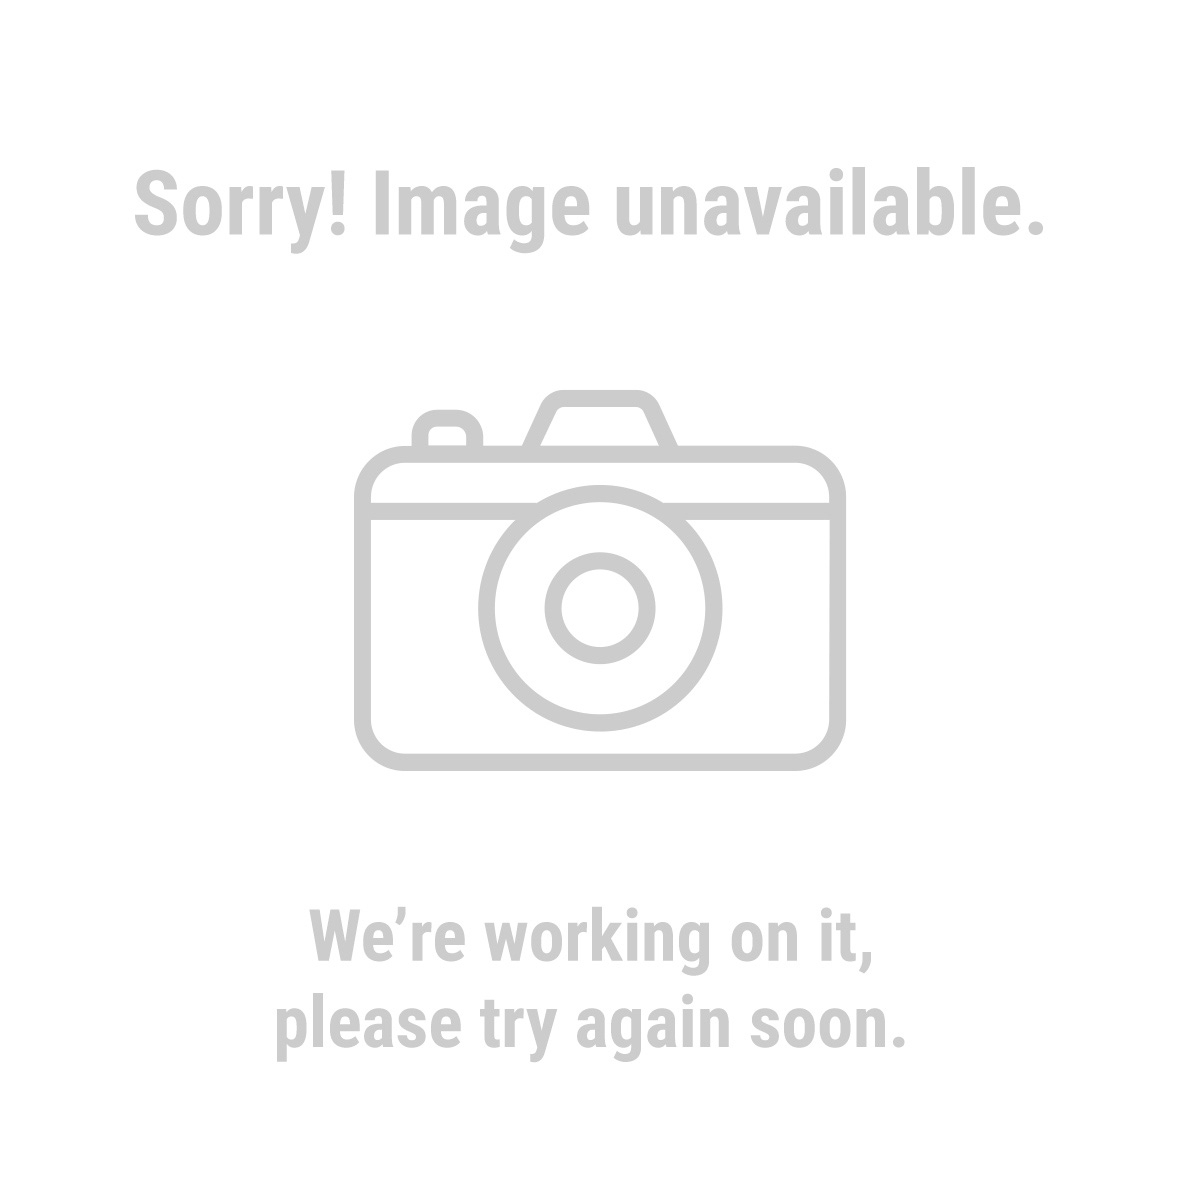 Fasten Pro 96755 Three-Way Tacker Staple Gun Kit